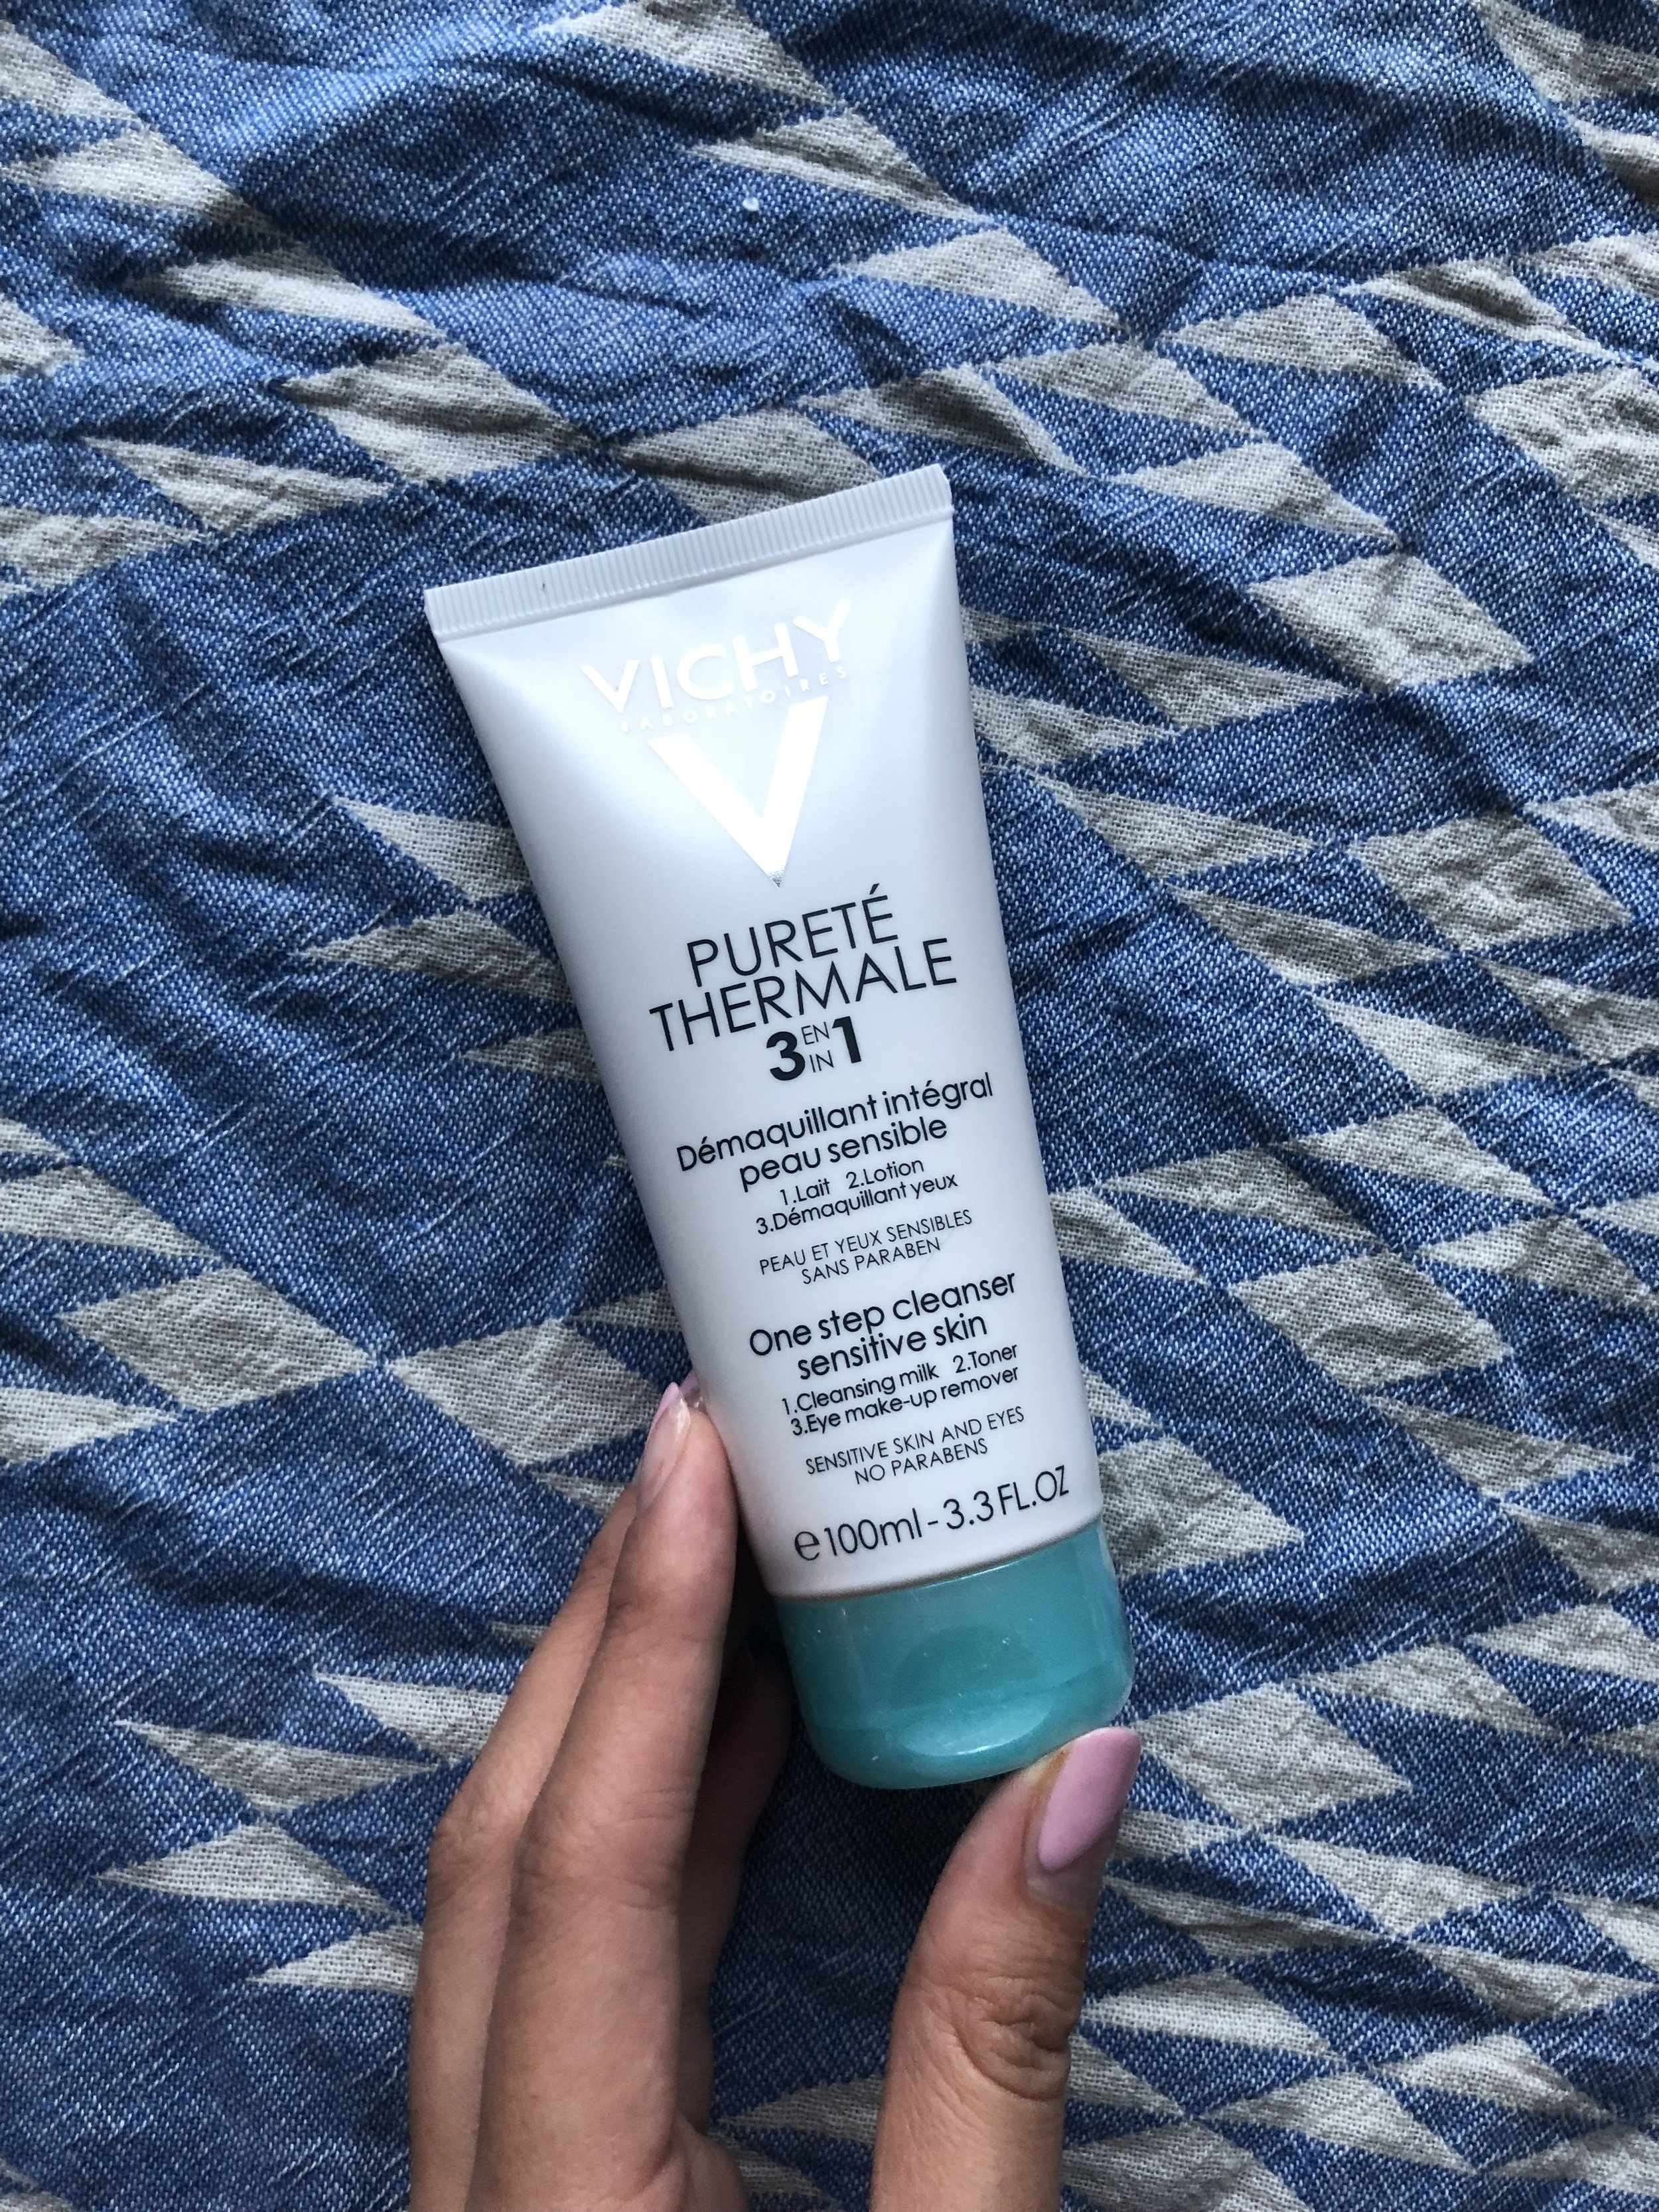 Vichy Purete: Face Cleanser and Makeup Remove - Retail $19.50